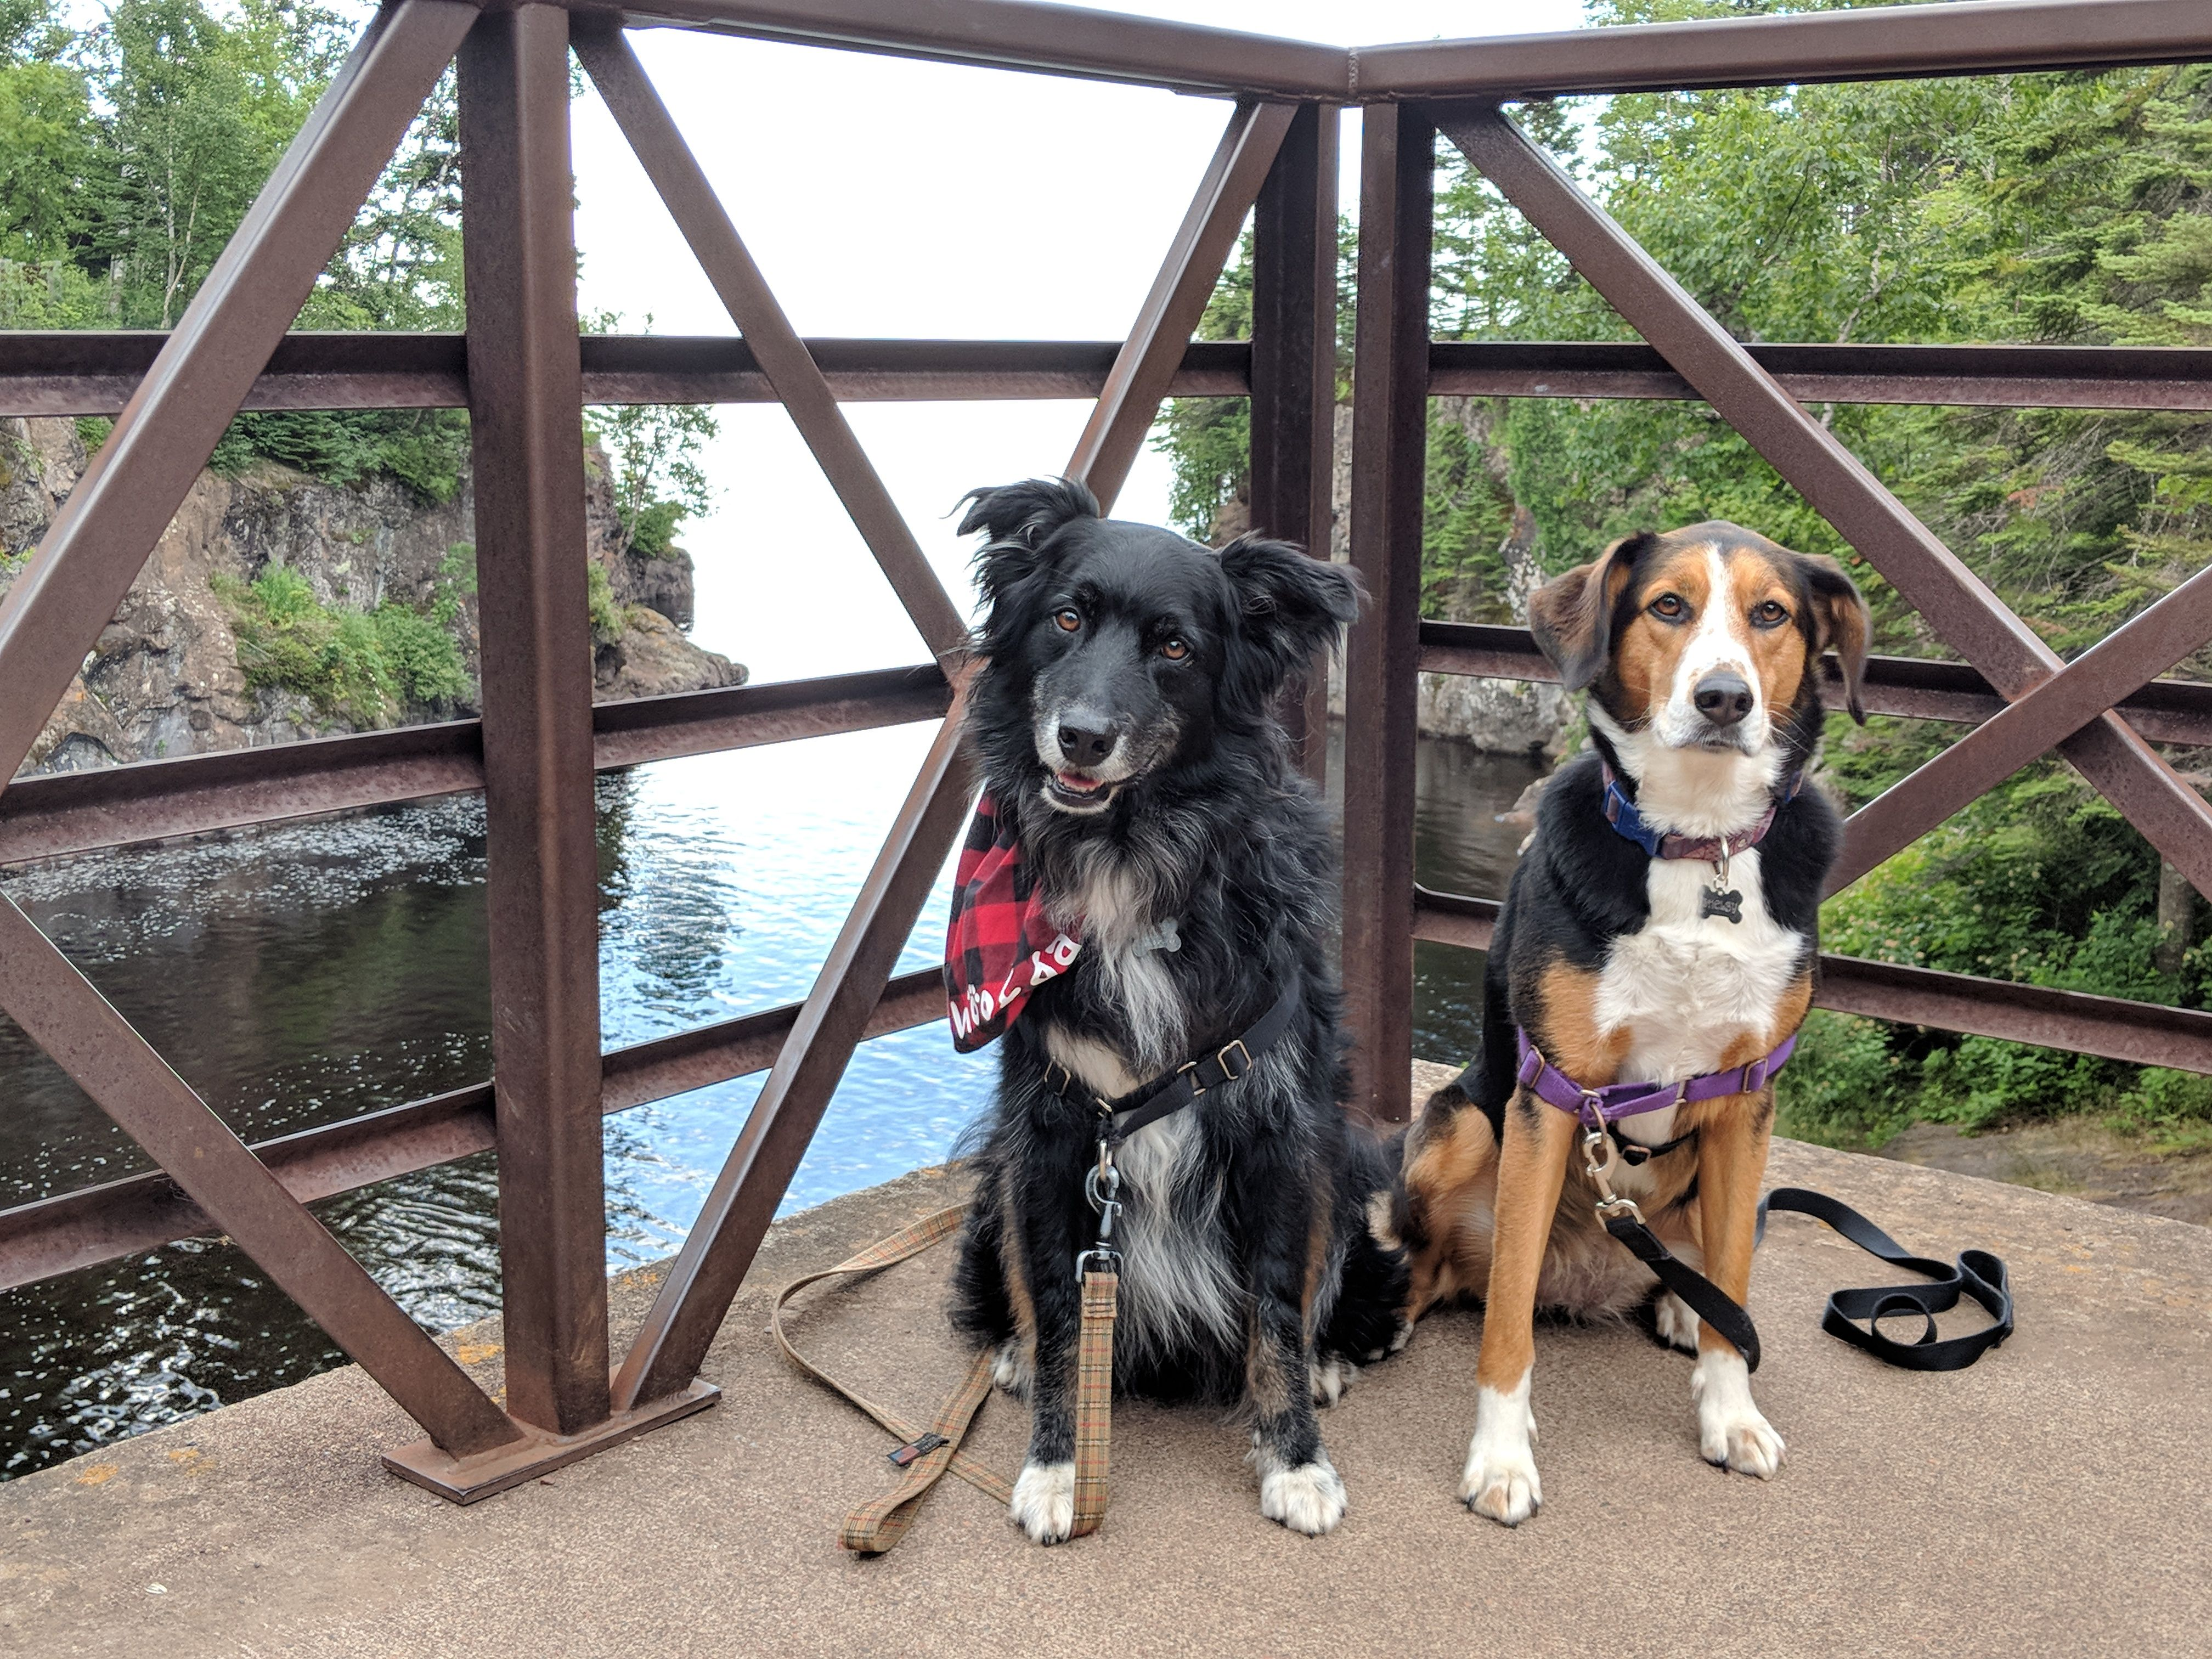 Woofda! A DogFriendly Guide to Minnesota's North Shore